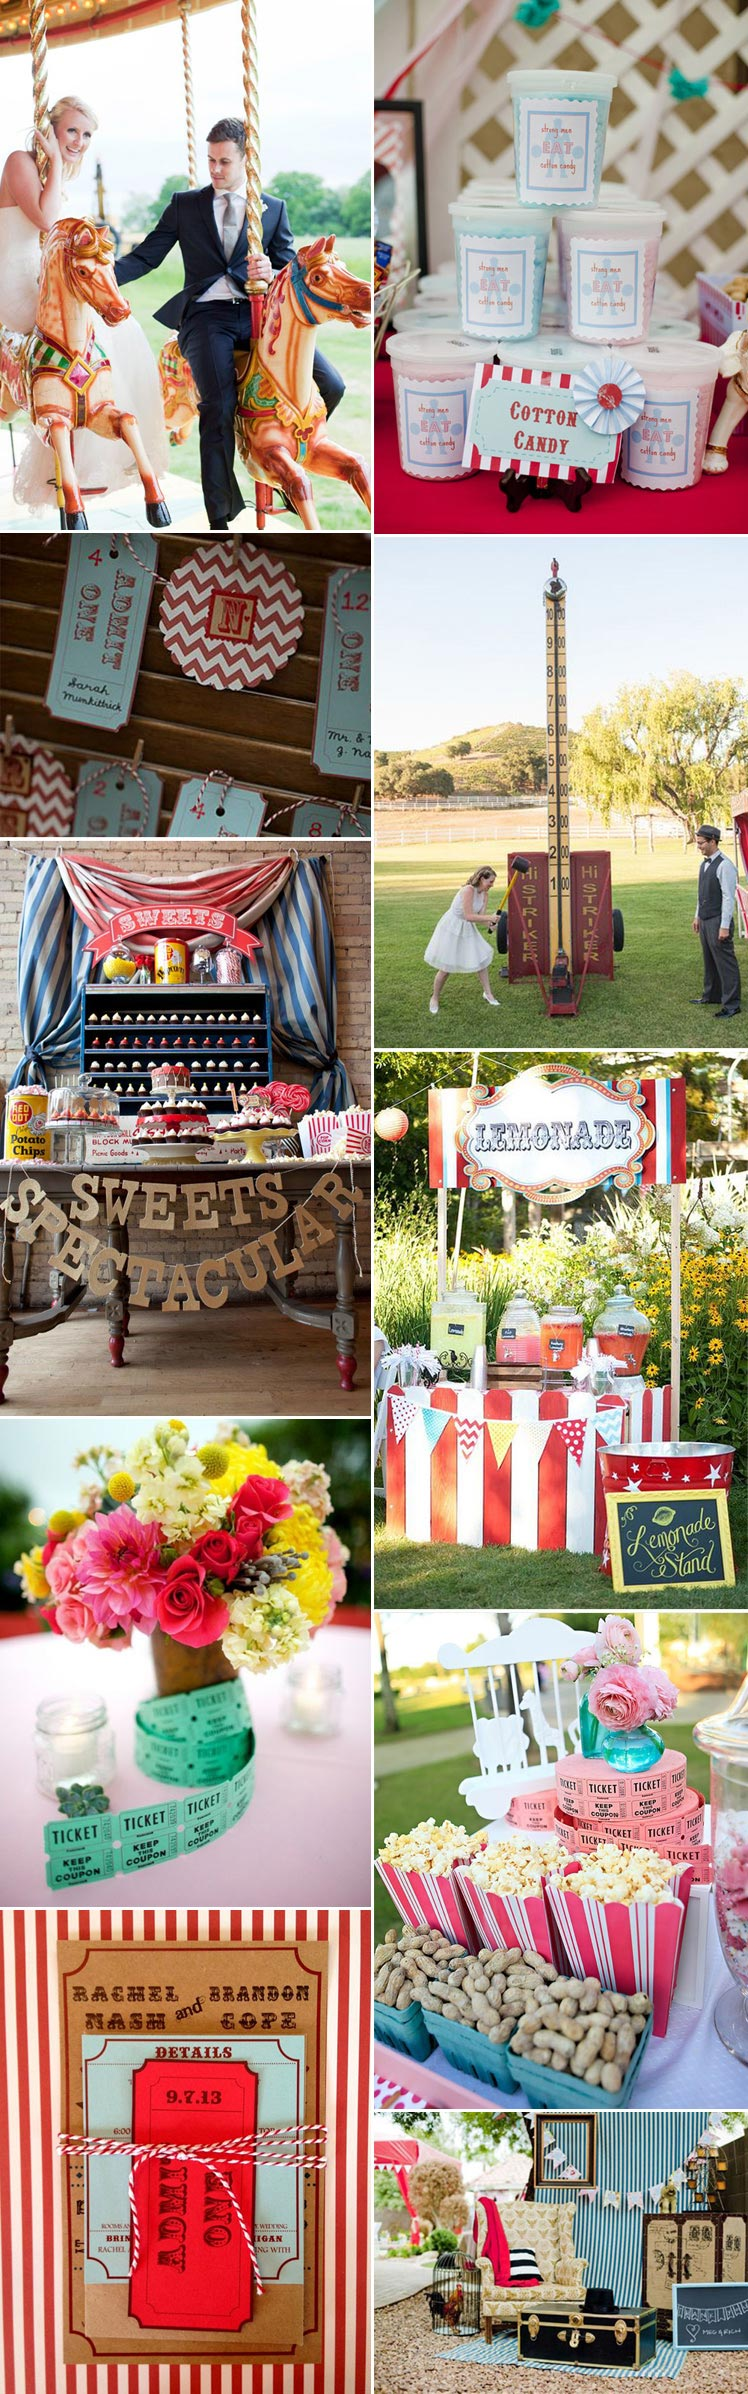 Ideas for a funfair wedding theme